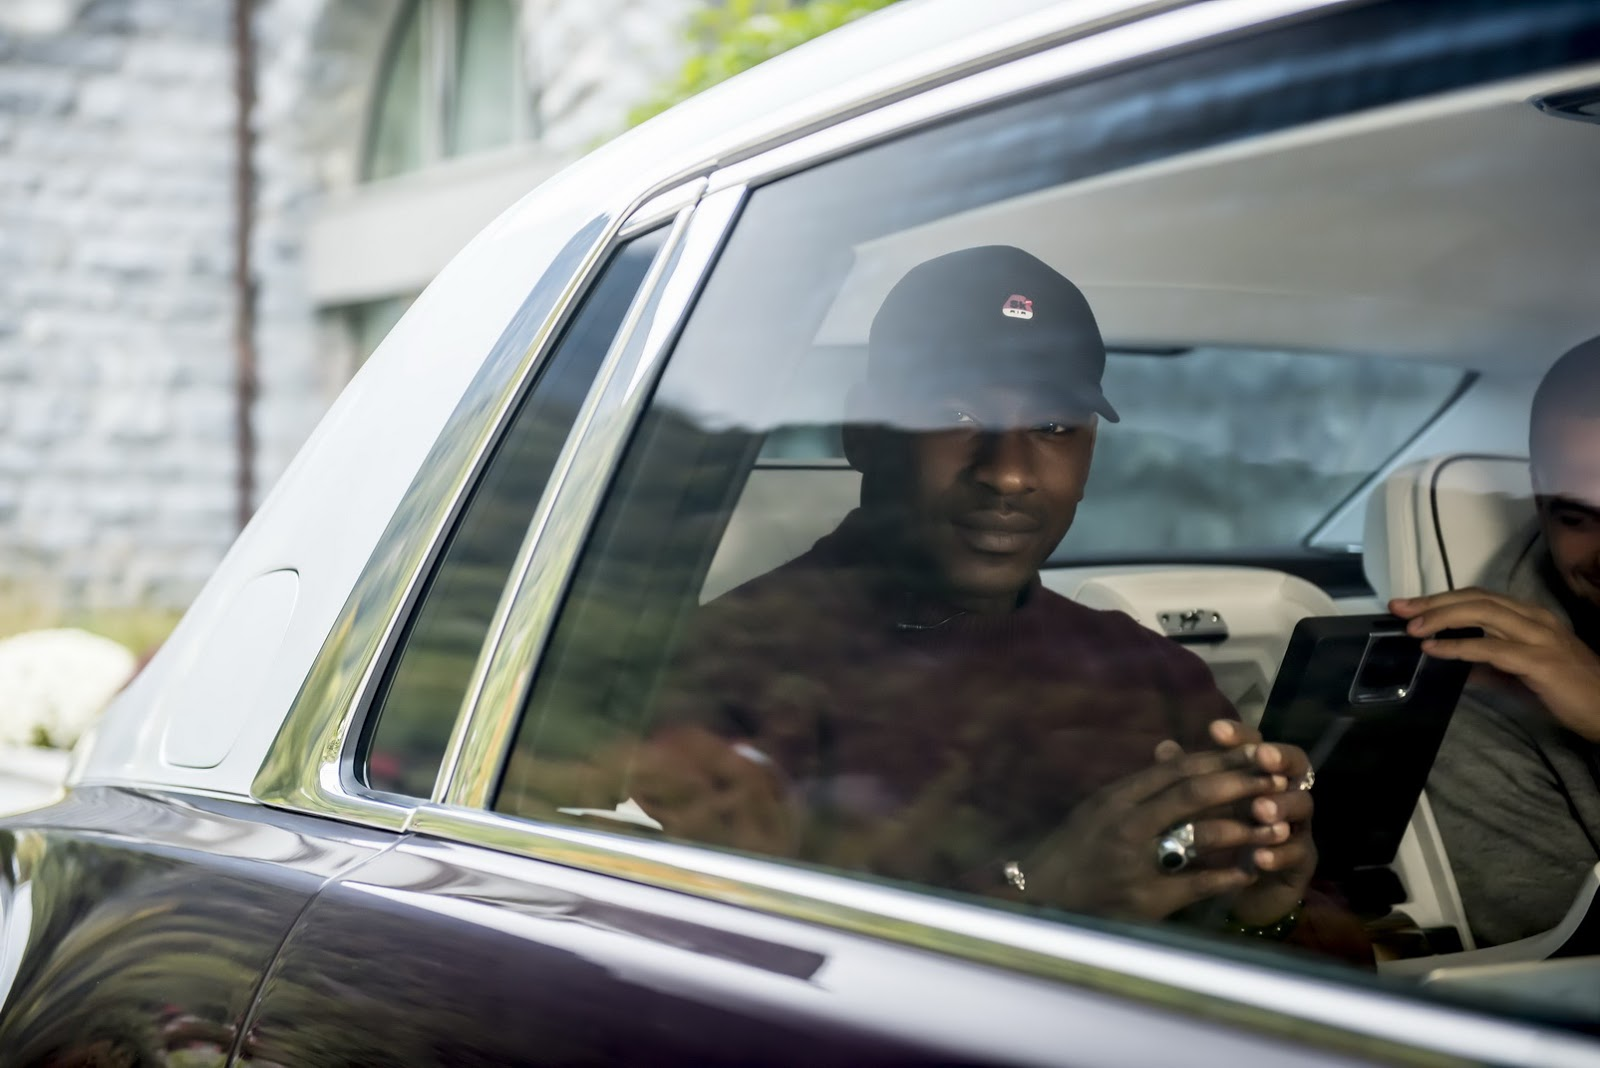 Skepta Recorded song from the Rolls-Royce